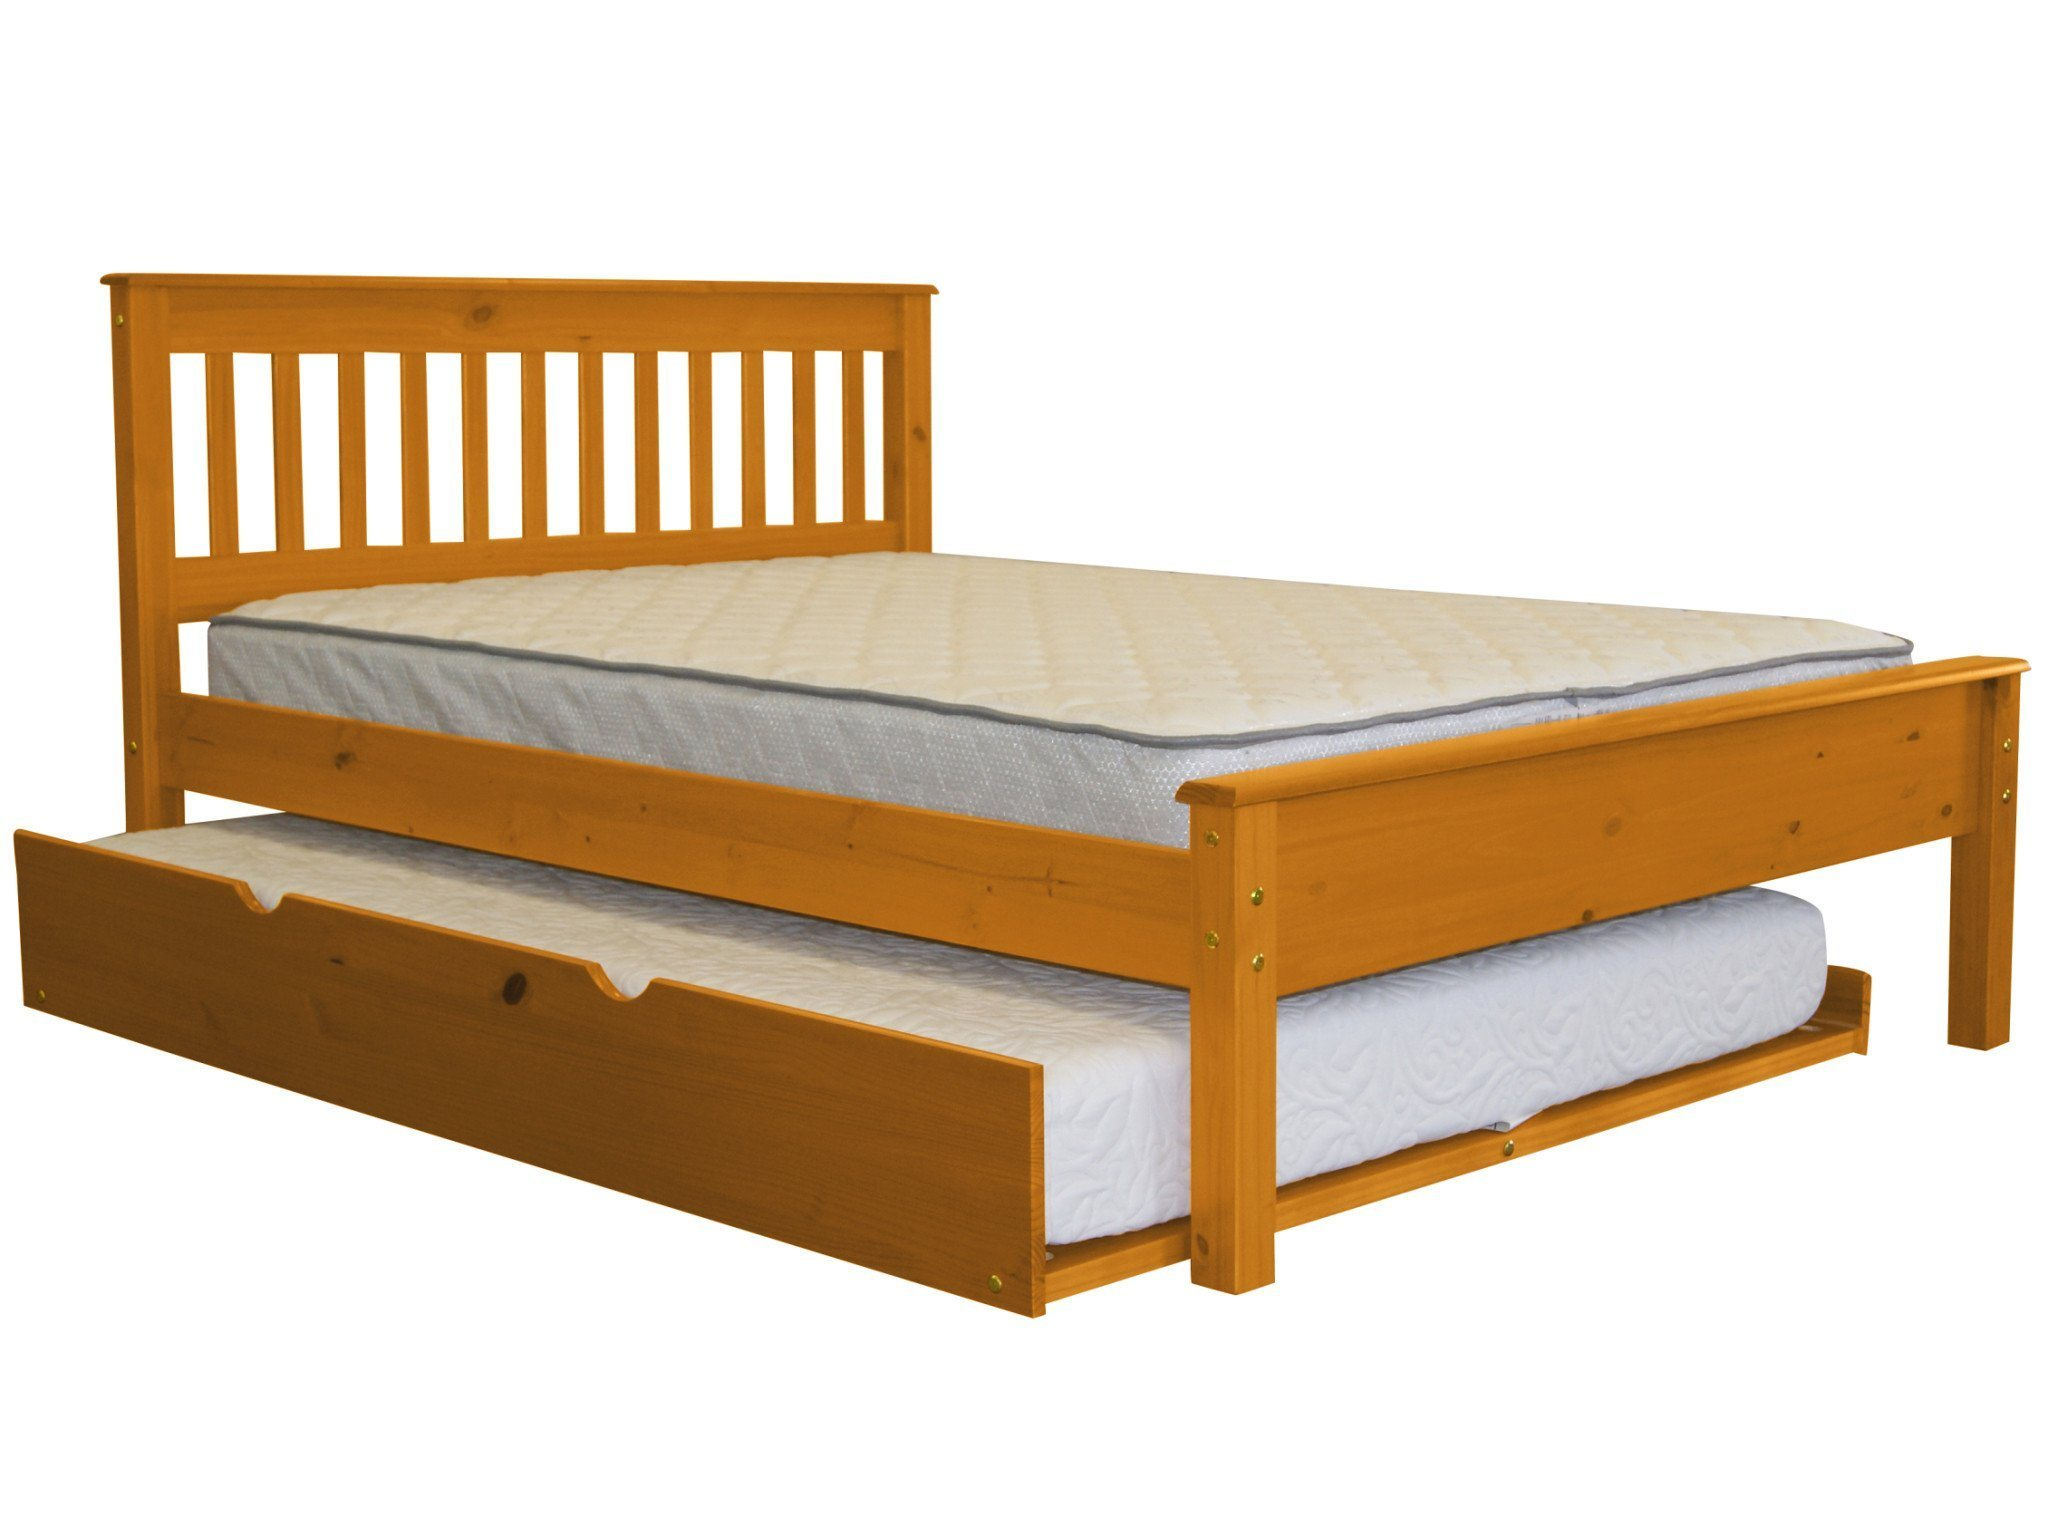 Bedz King Mission Style Full Bed with a Full Trundle, Espresso by Bedz King